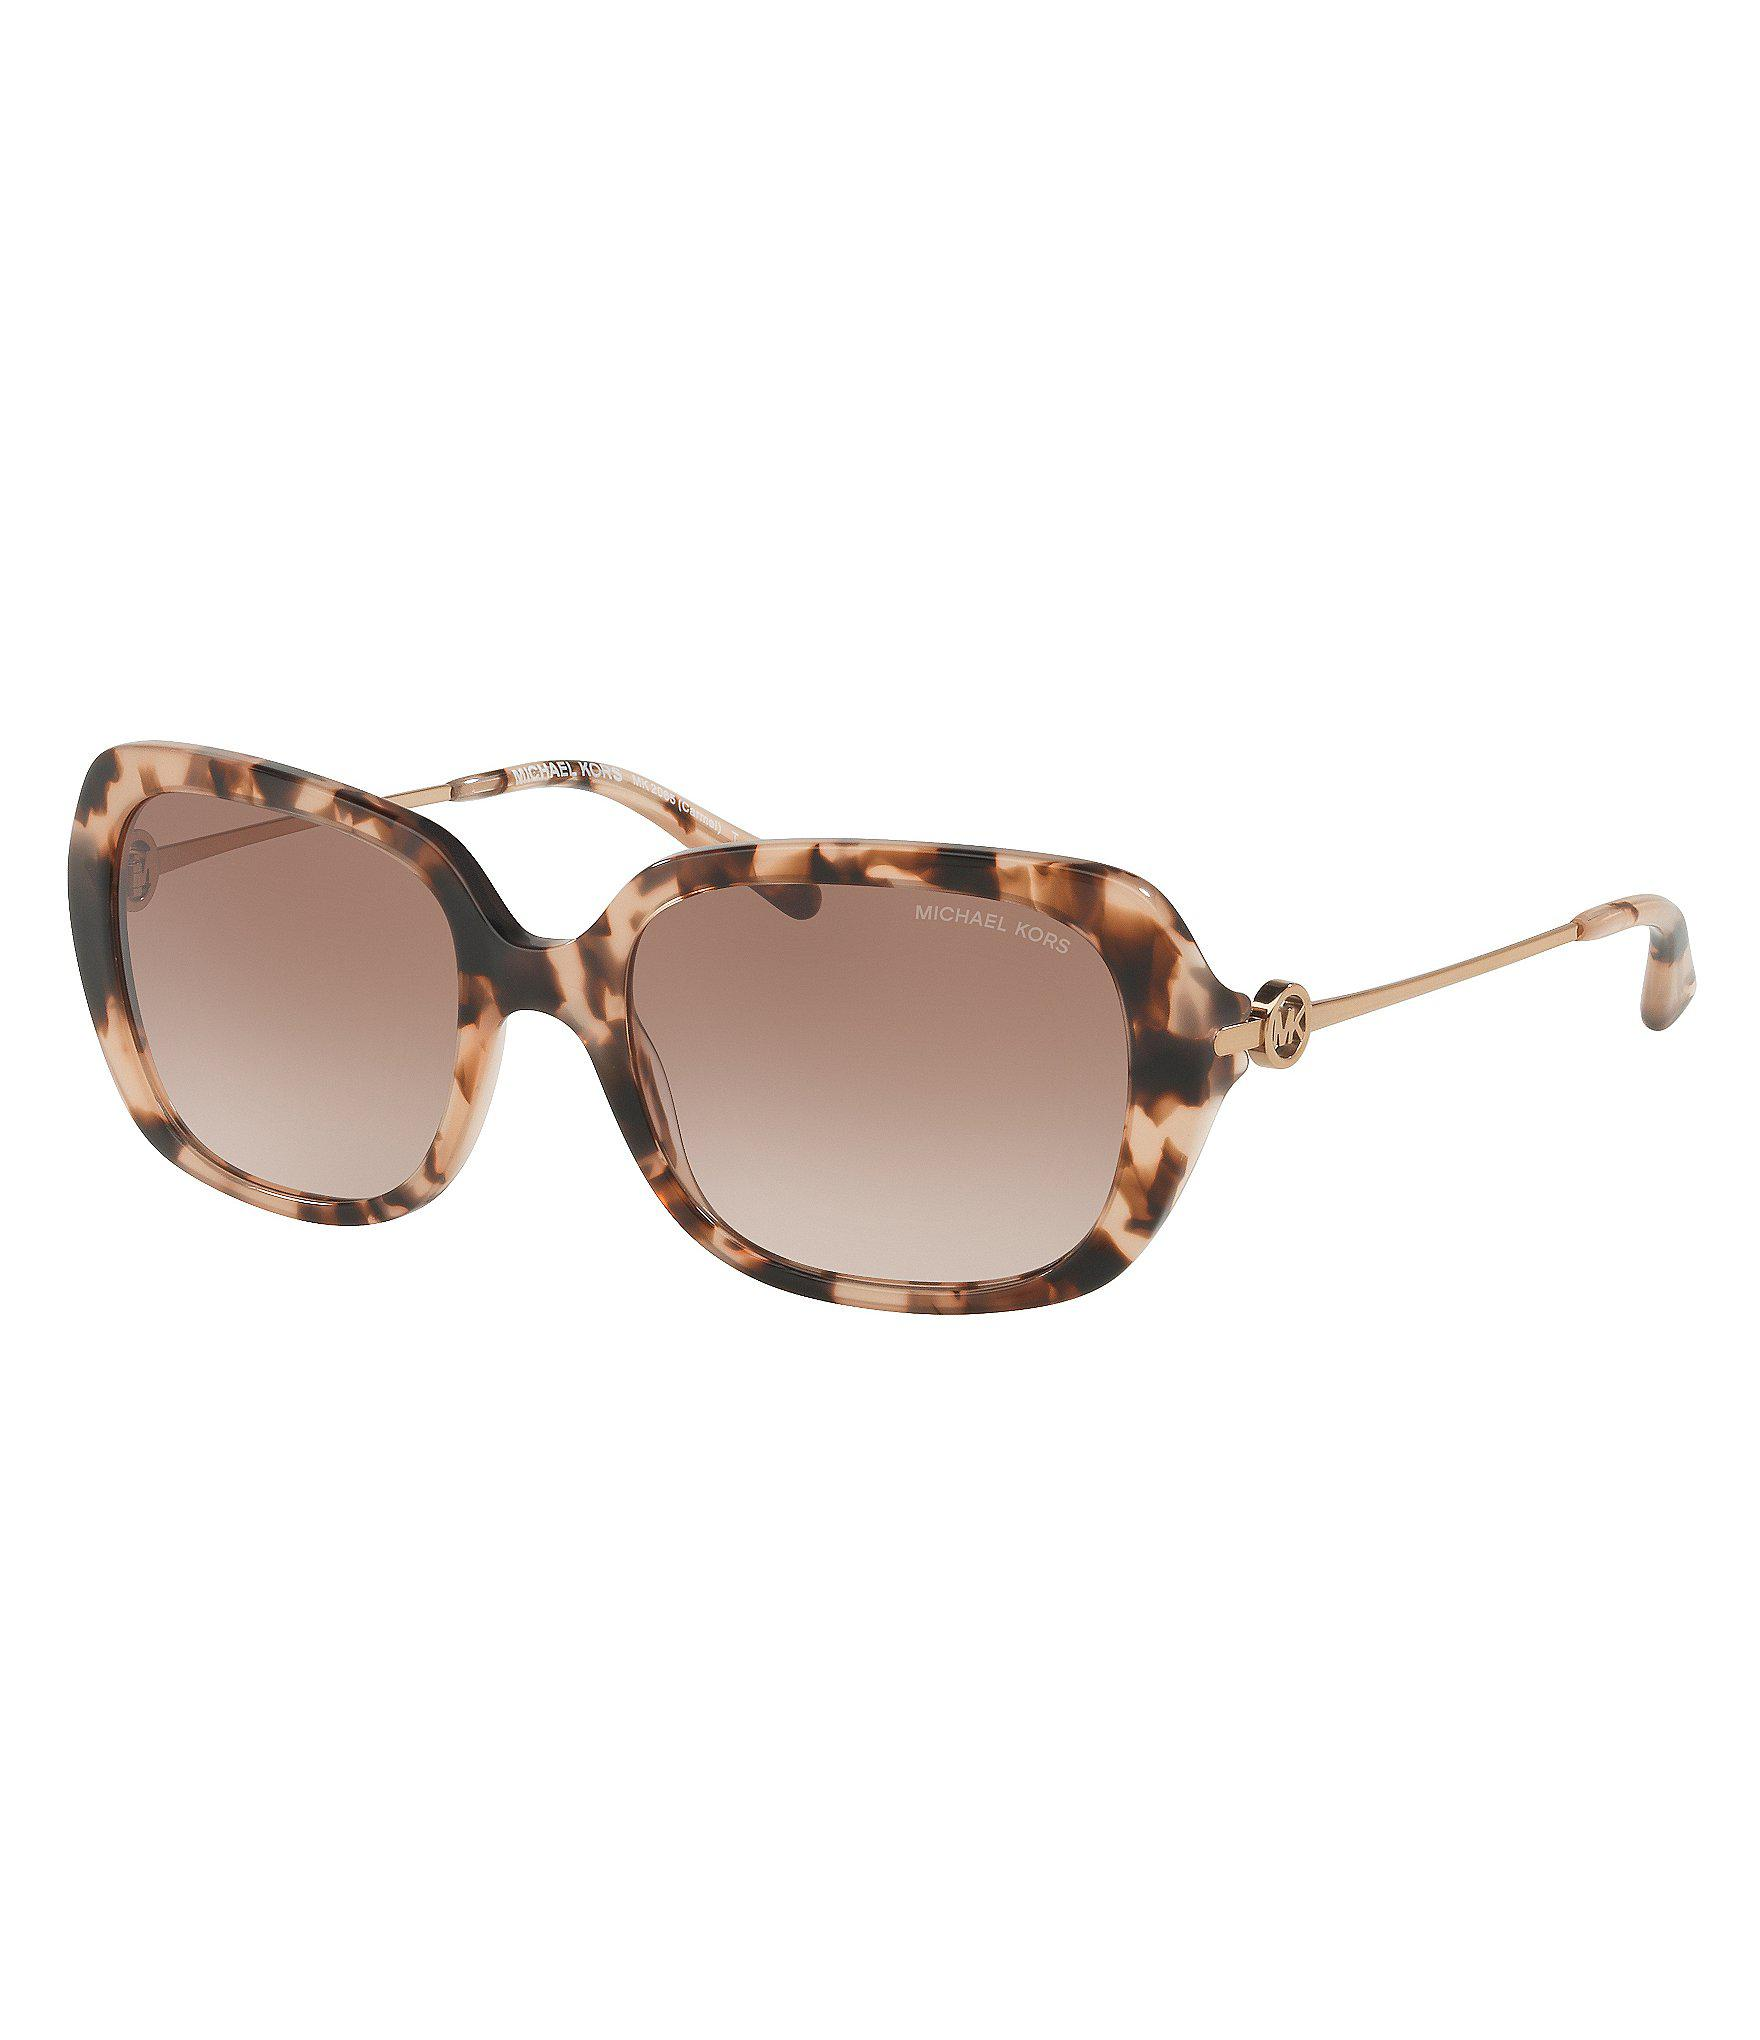 4b619b8dffc Michael Kors - Black Women s Carmel Sunglasses - Lyst. View fullscreen